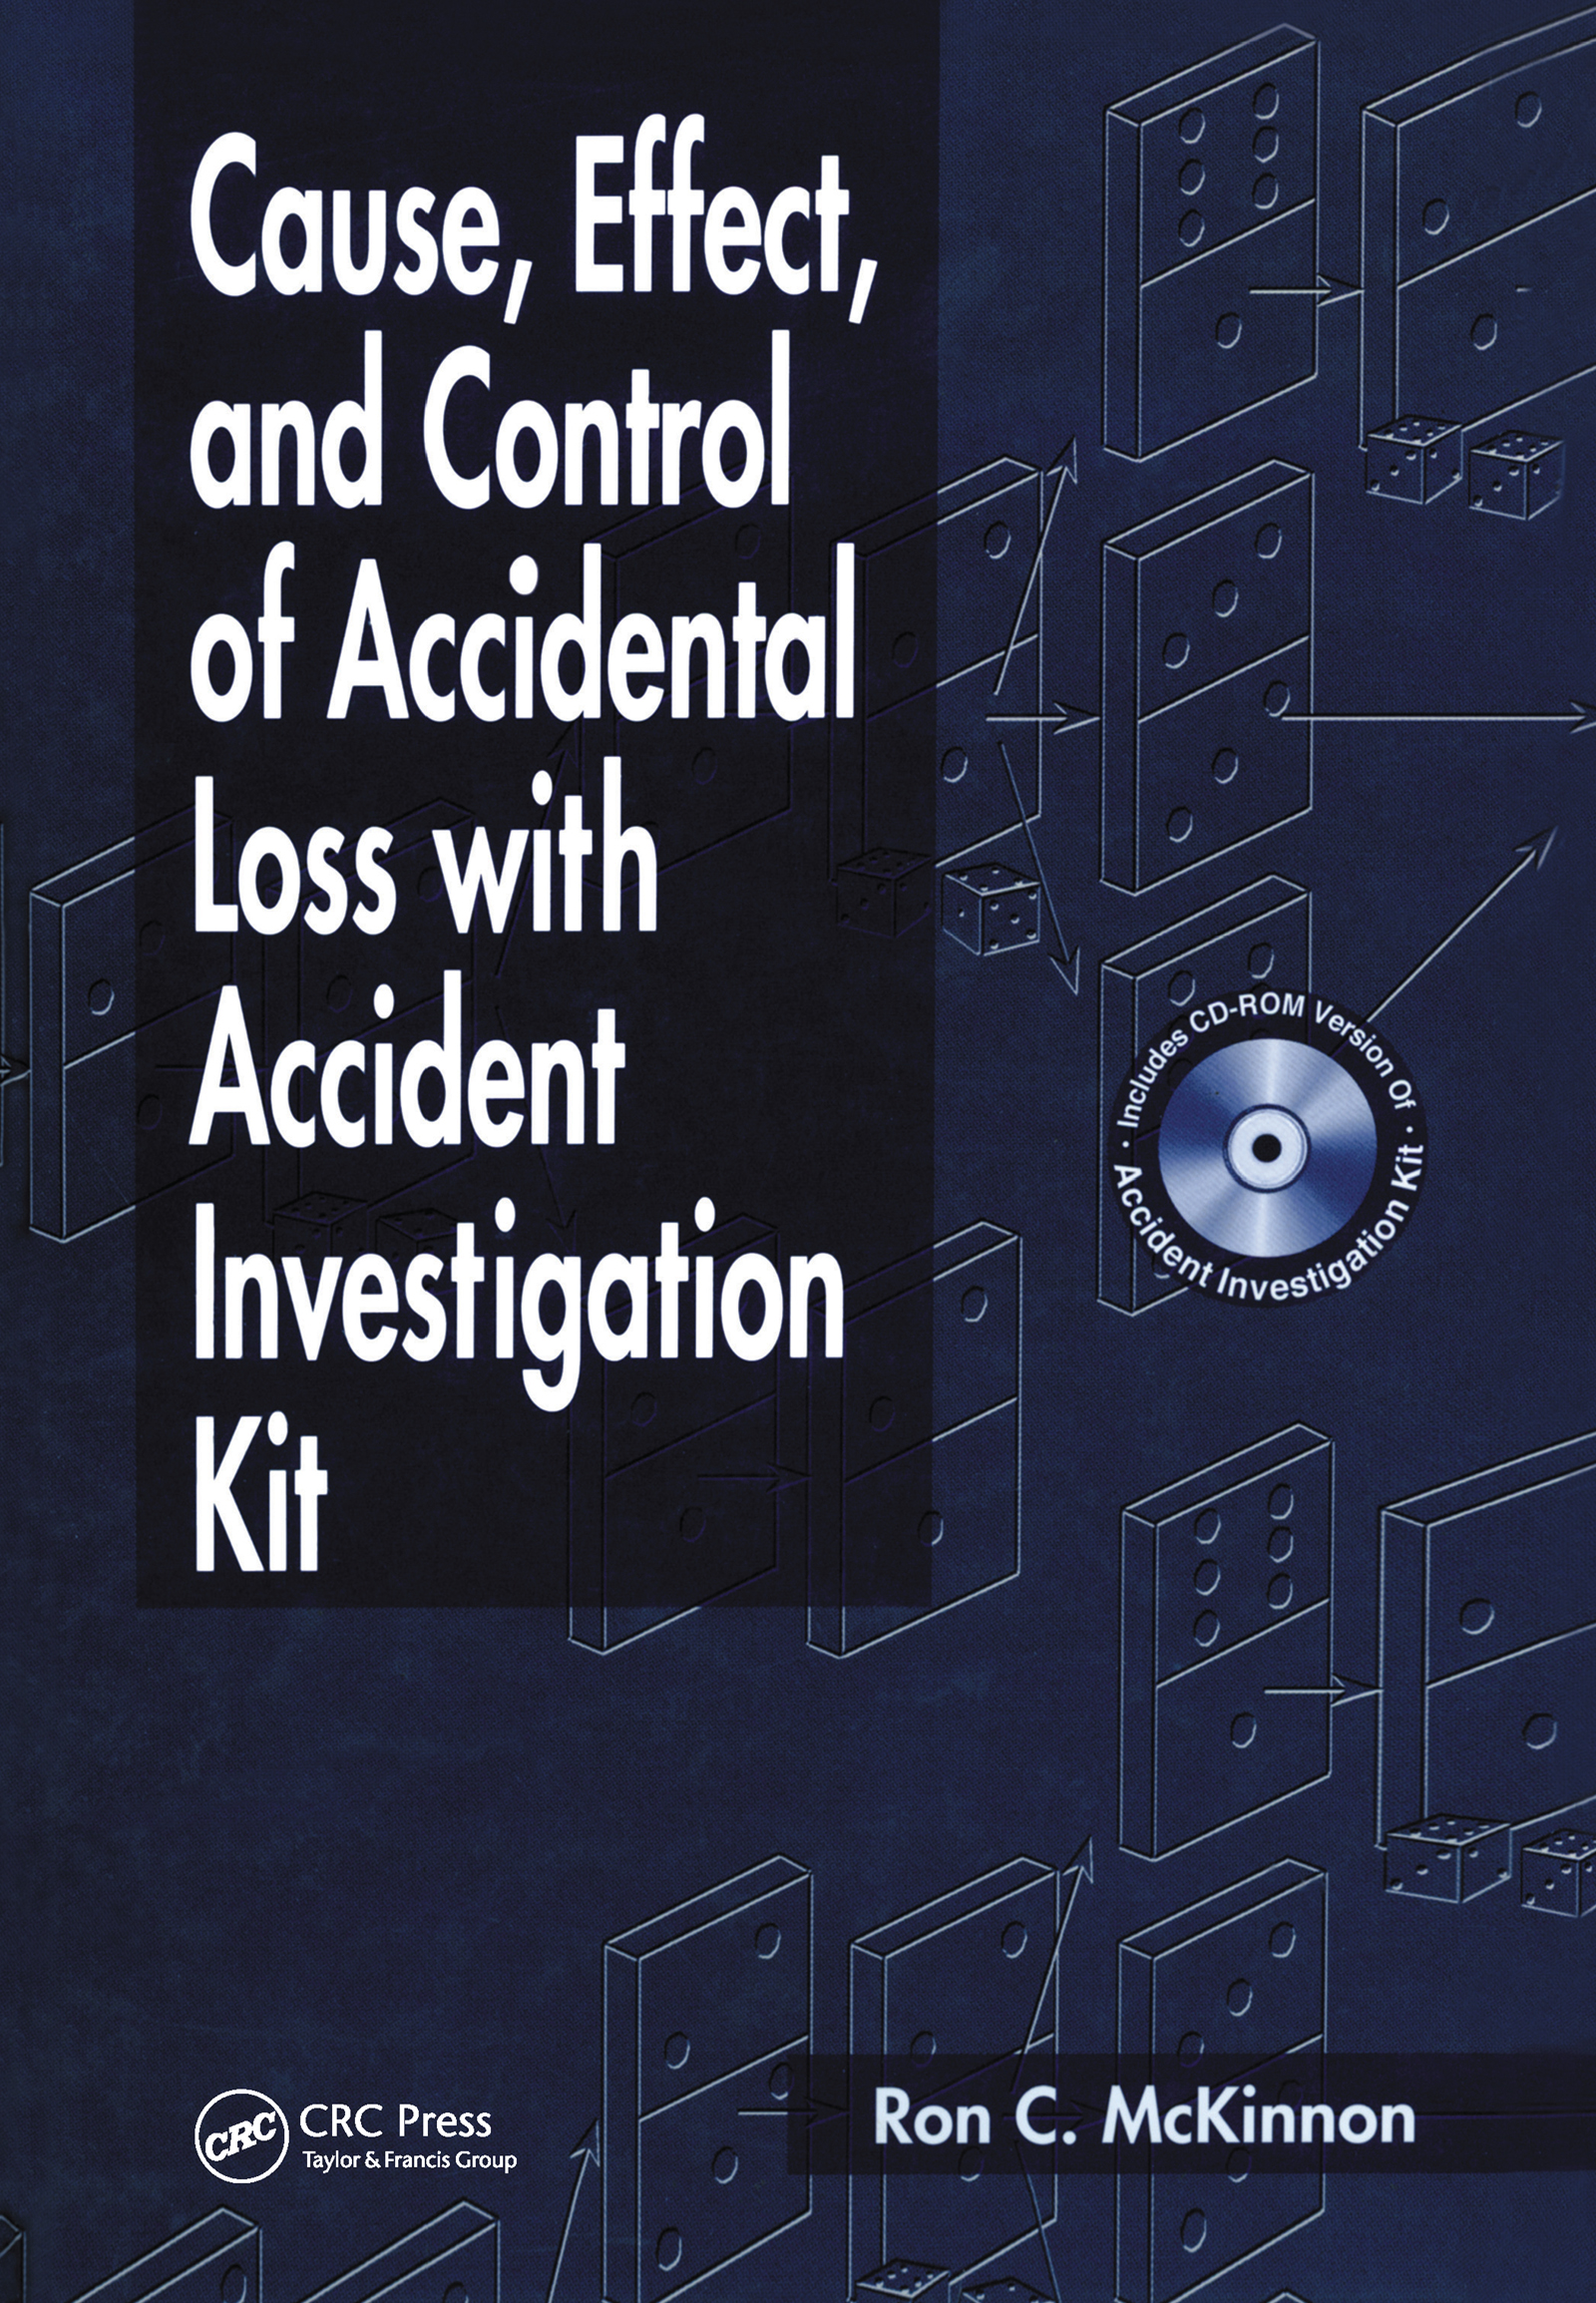 Cause, Effect, and Control of Accidental Loss with Accident Investigation Kit